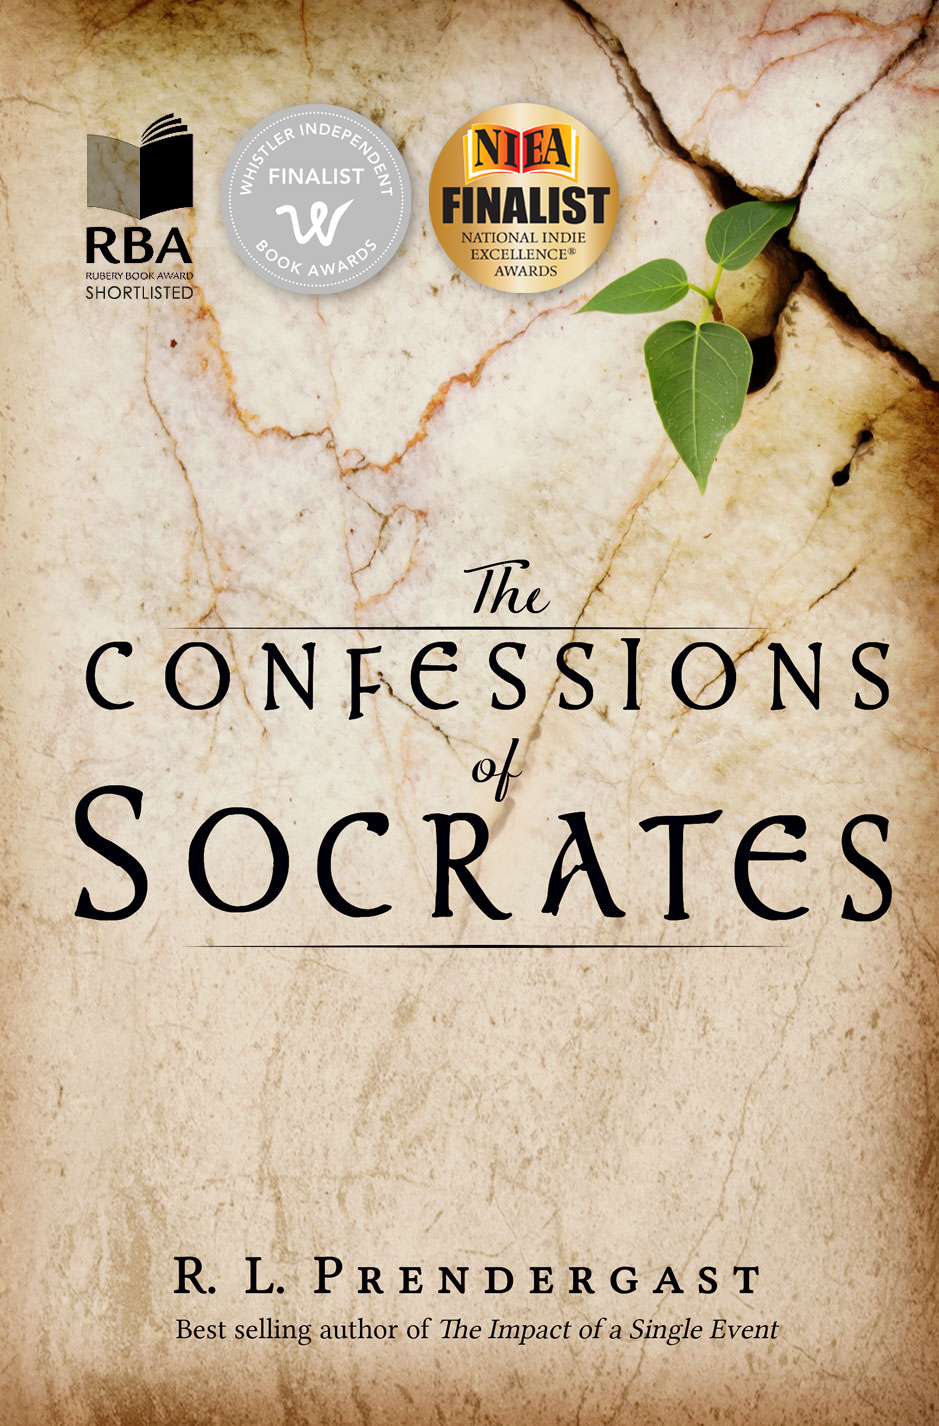 The Confessions of Socrates